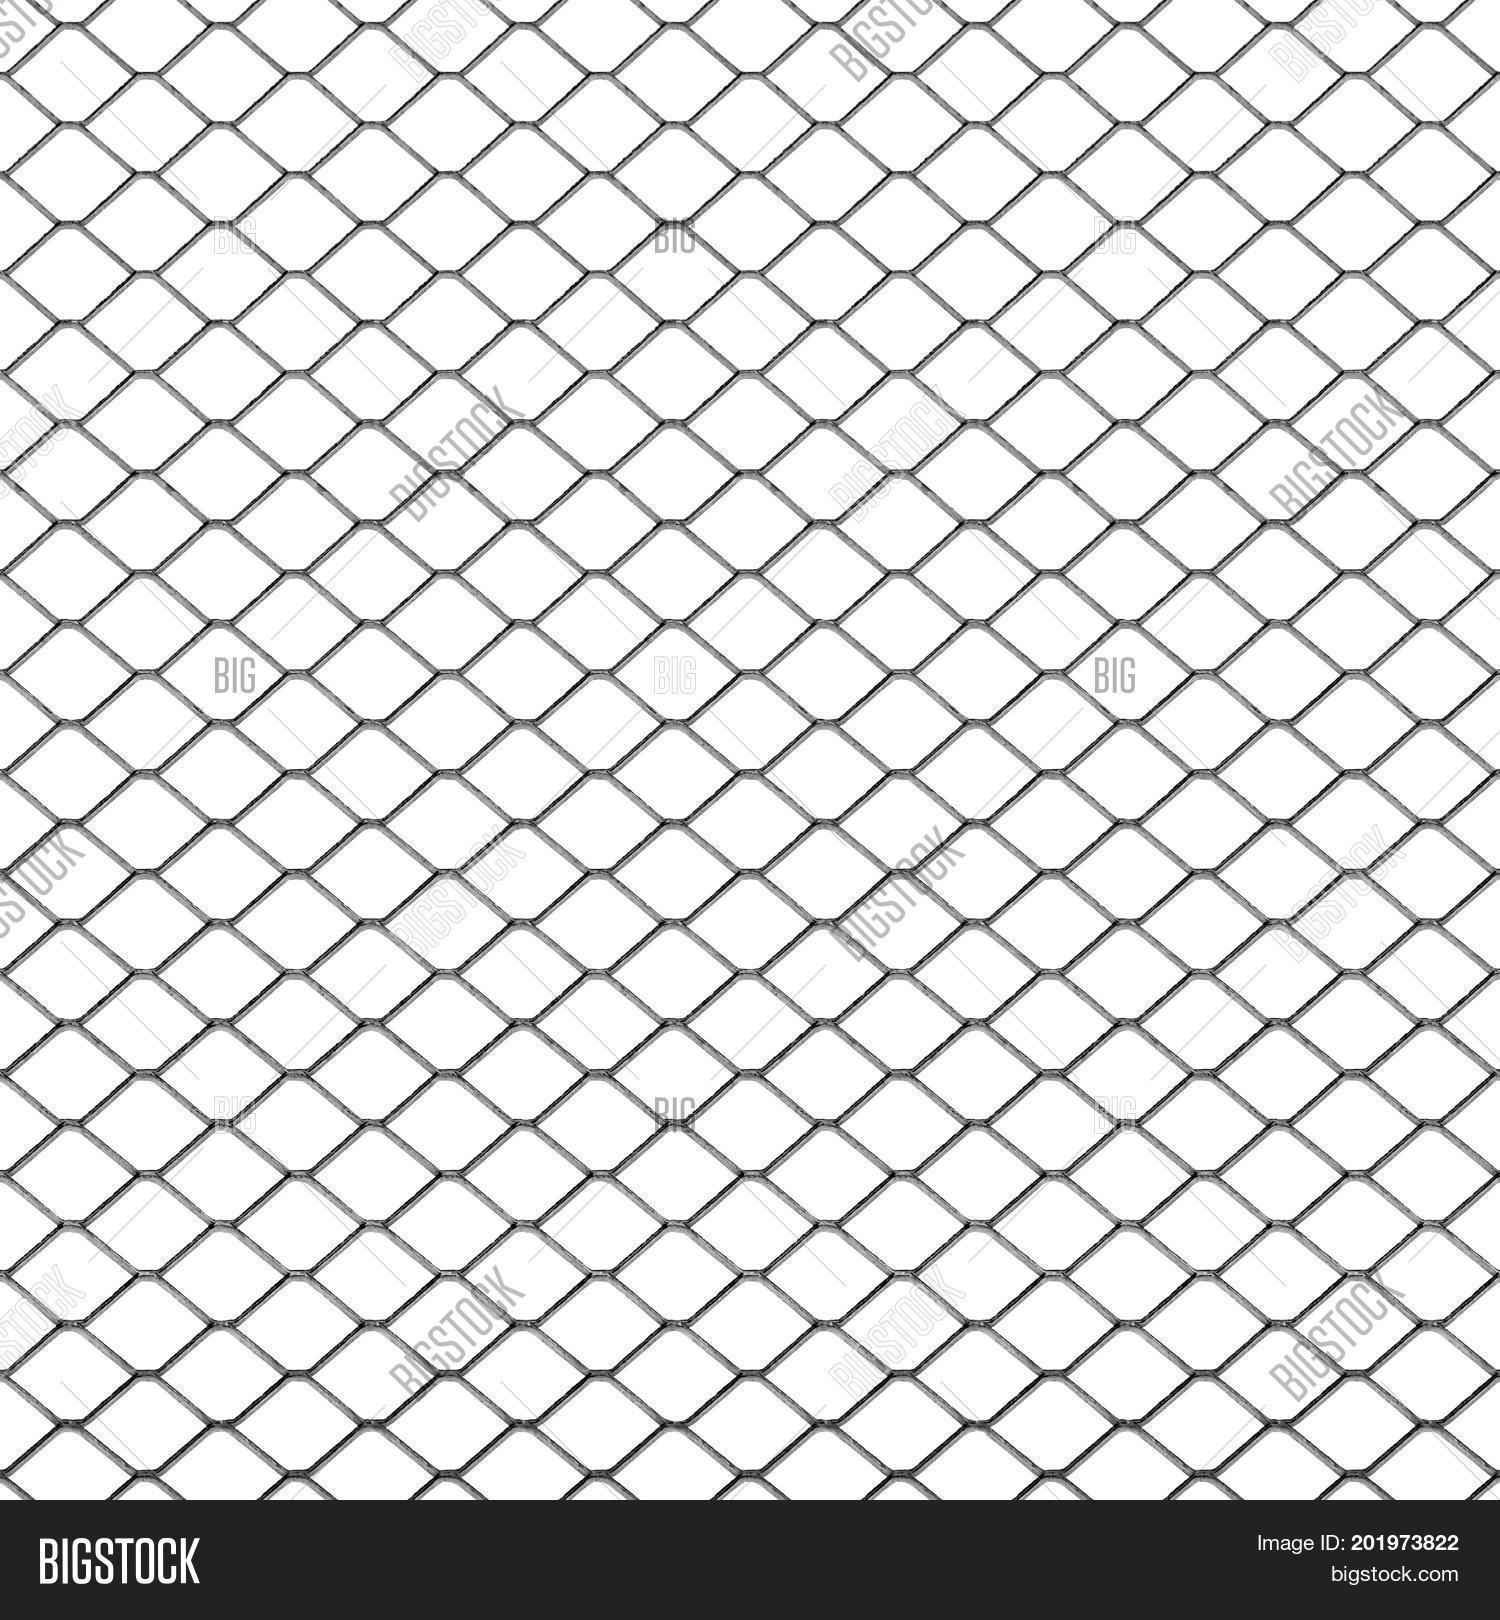 Wire Mesh, Metal Chain Image & Photo (Free Trial) | Bigstock